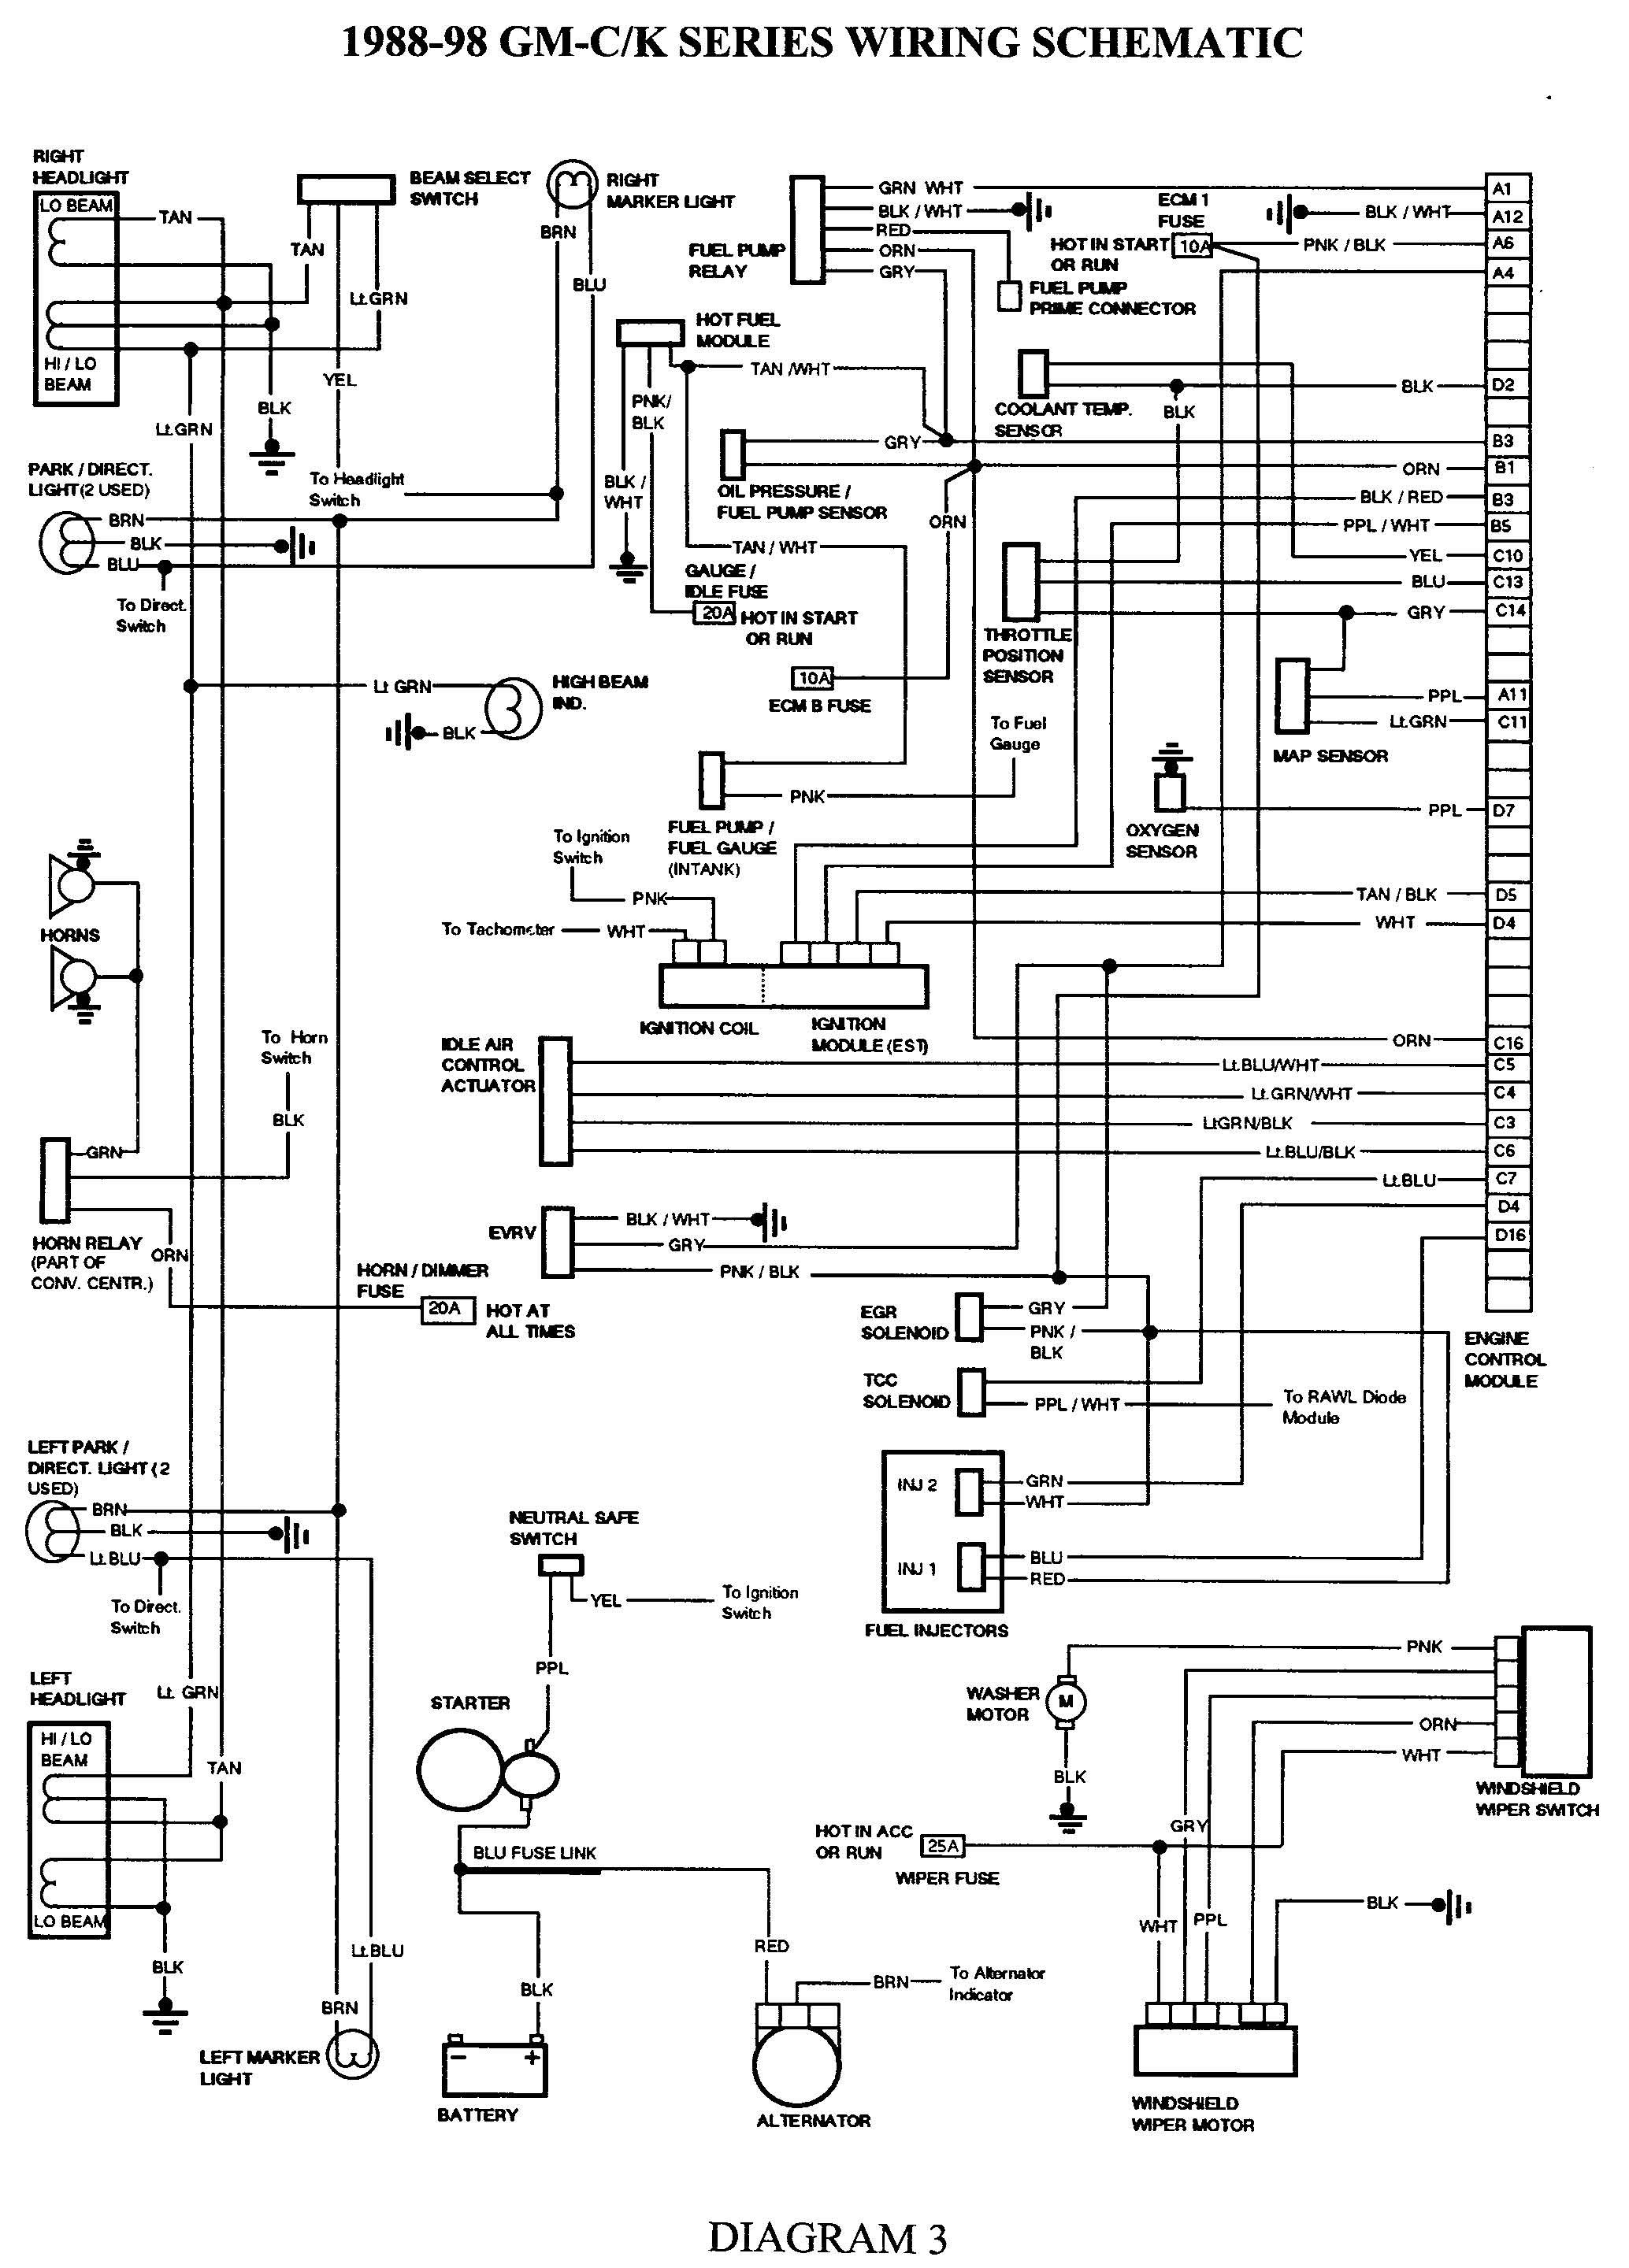 [SCHEMATICS_4PO]  Pin on kc | 1988 Chevy S10 Steering Column Wiring Diagram |  | Pinterest